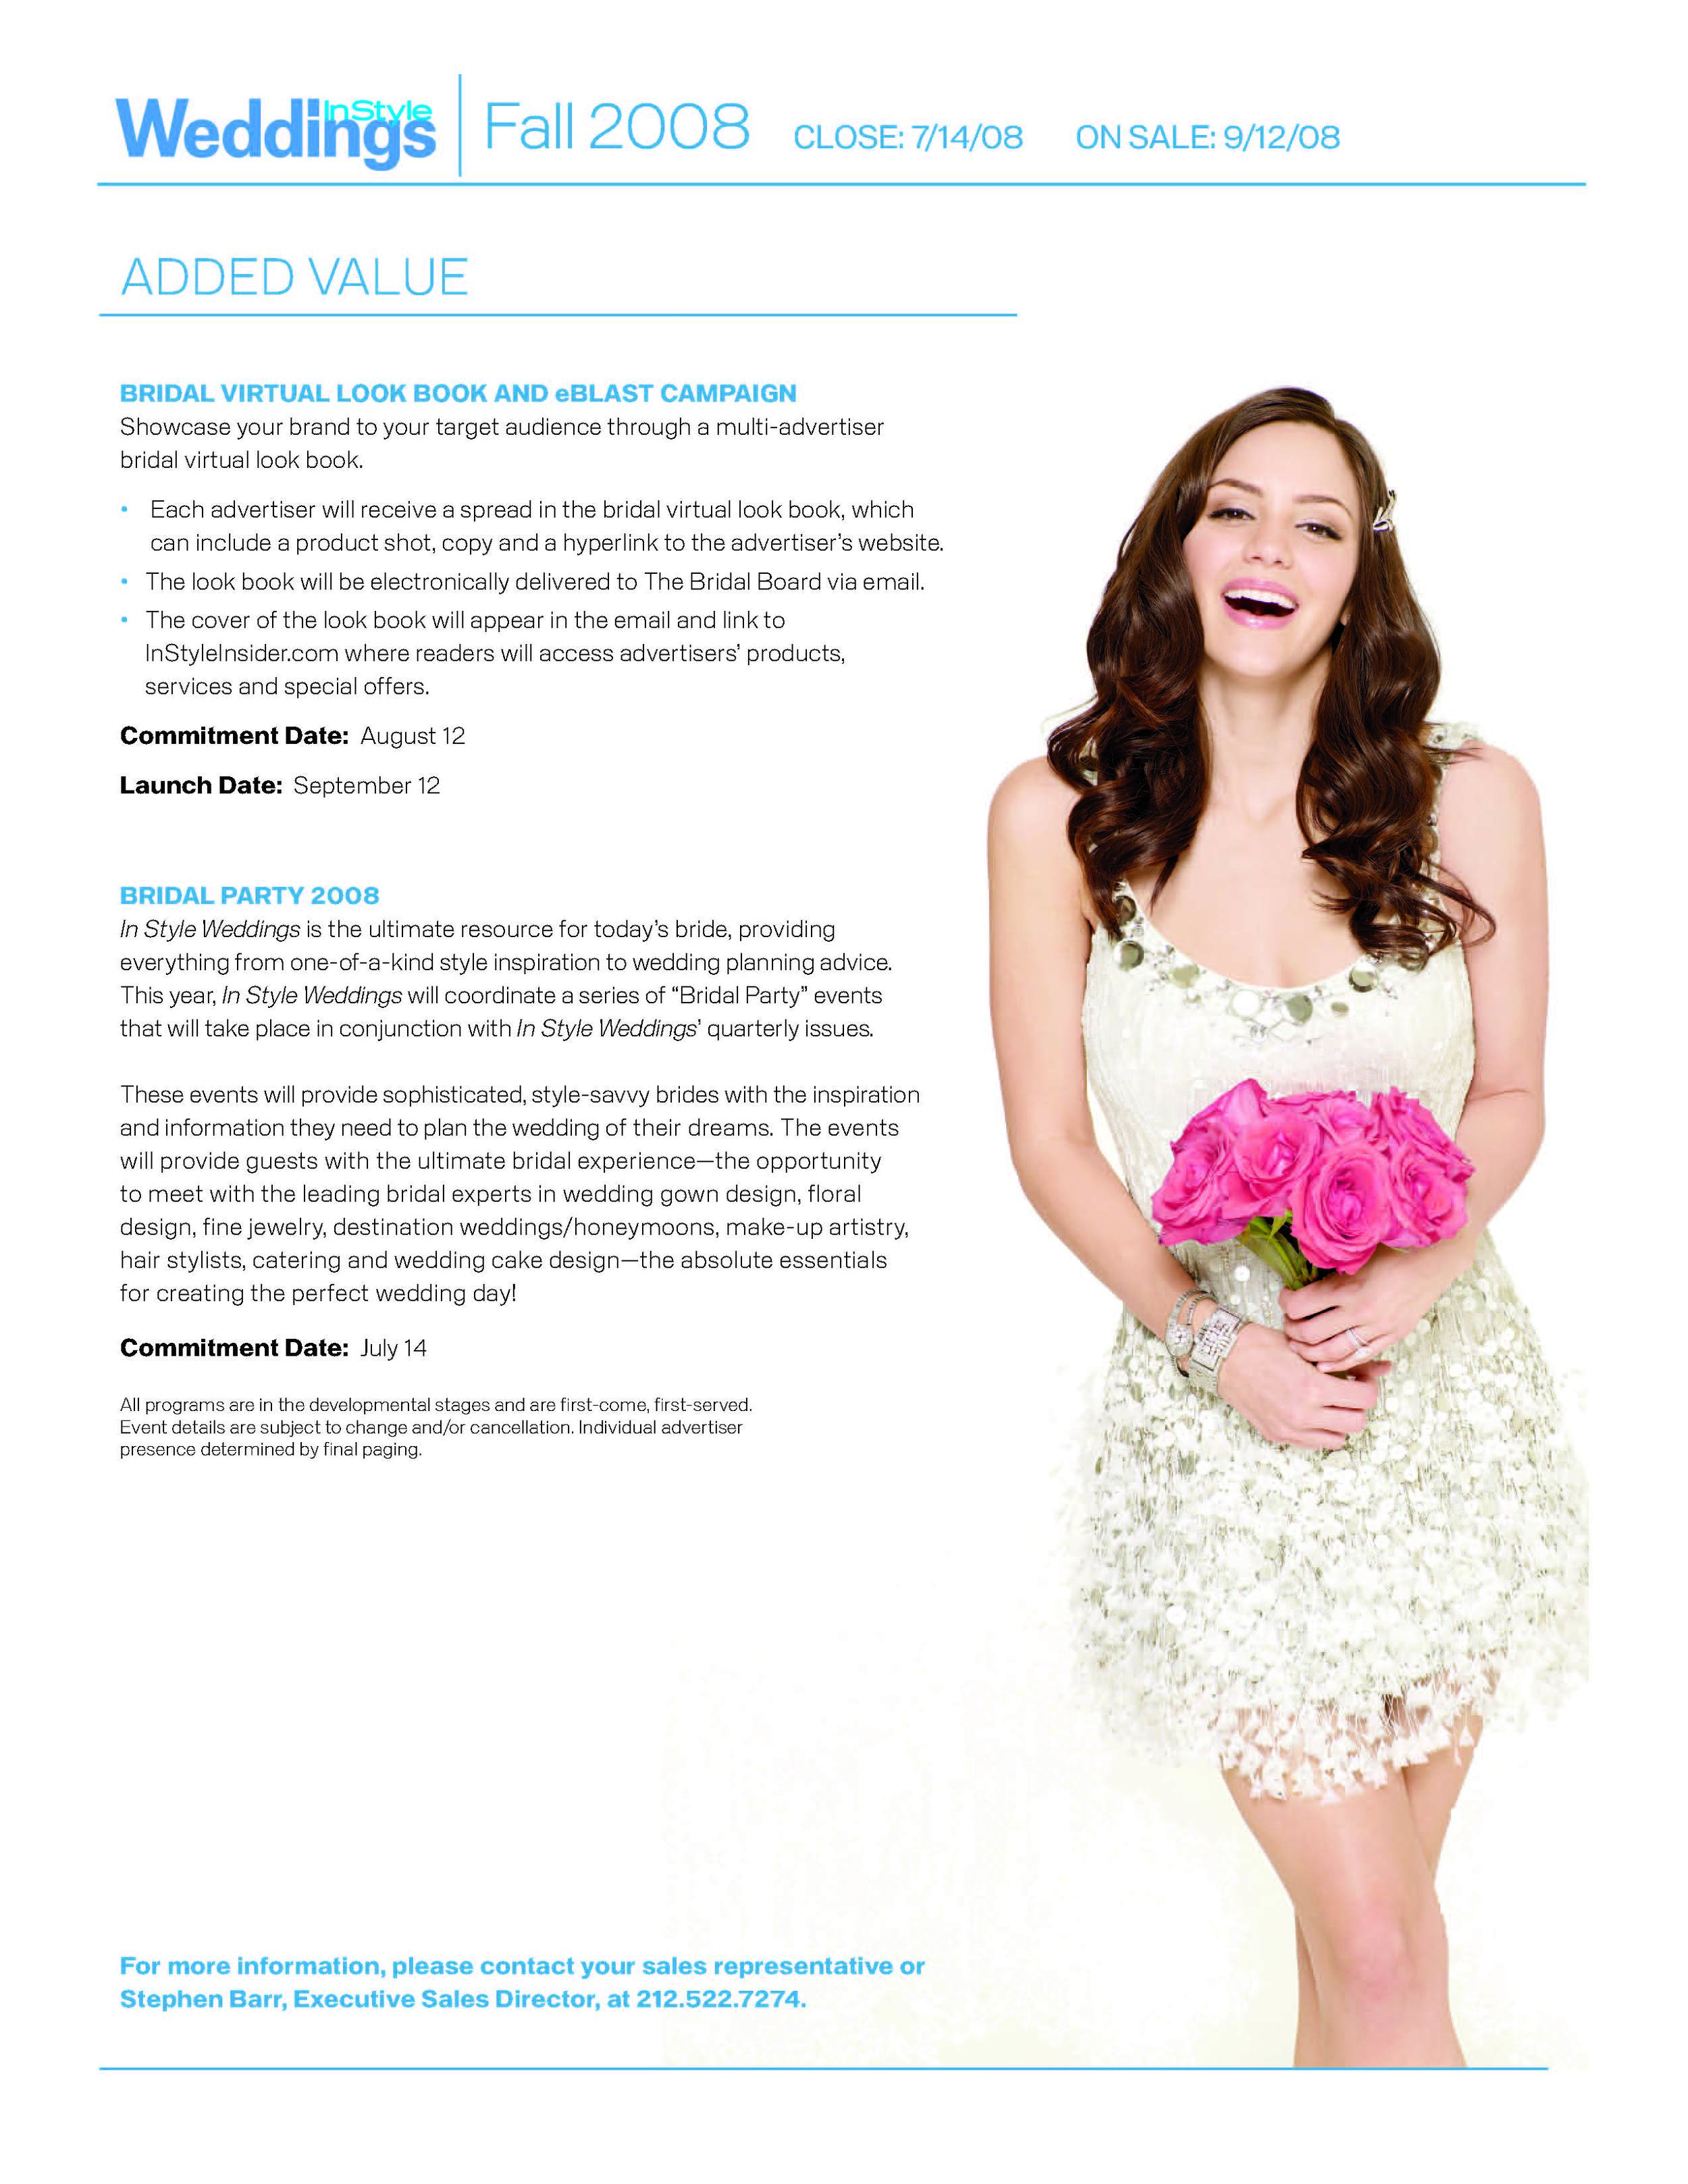 weddings_Fall08SS_Page_2.jpg